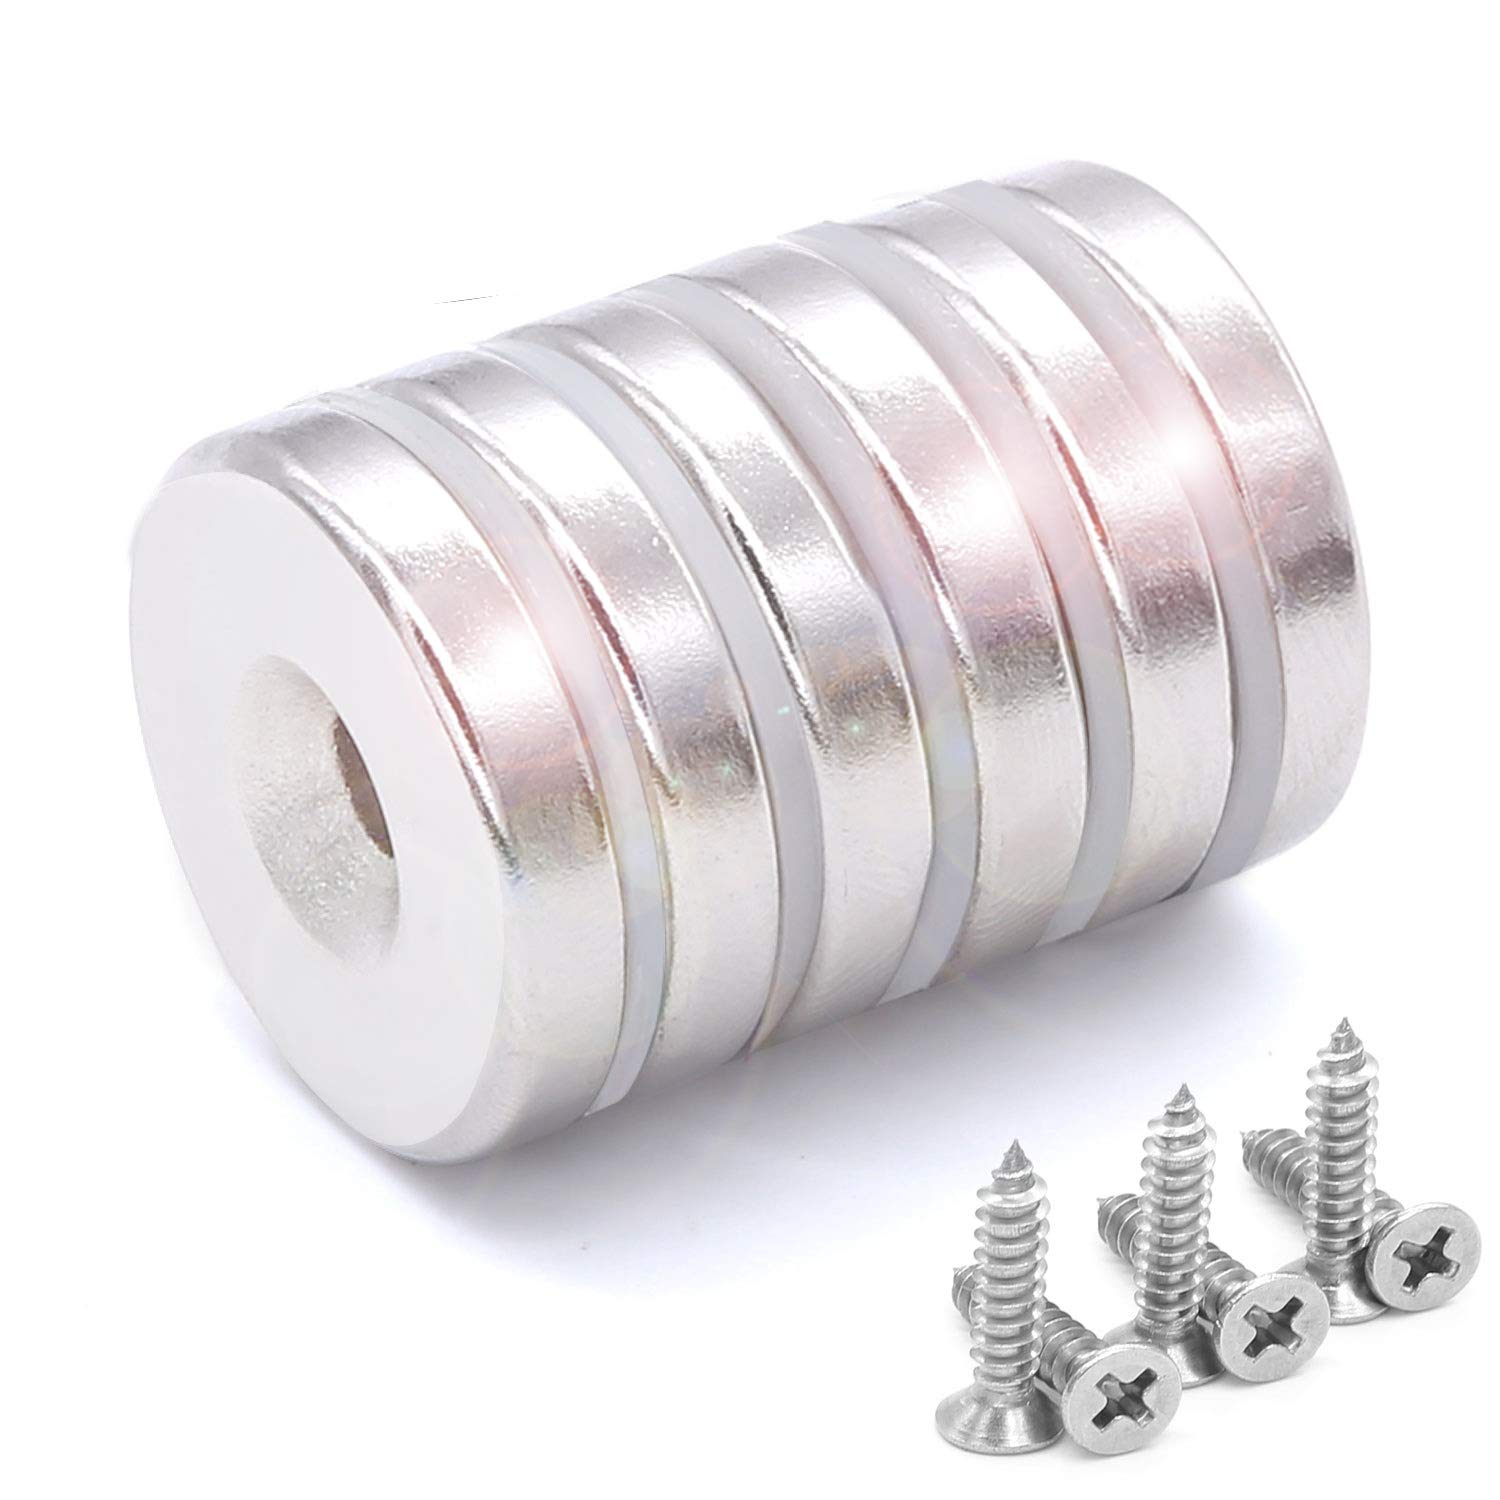 6 Pack 25 x 5 mm Neodymium Disc Countersunk Hole Magnets, Strong Permanent Rare Earth Magnet With 6 Screws for Crafts